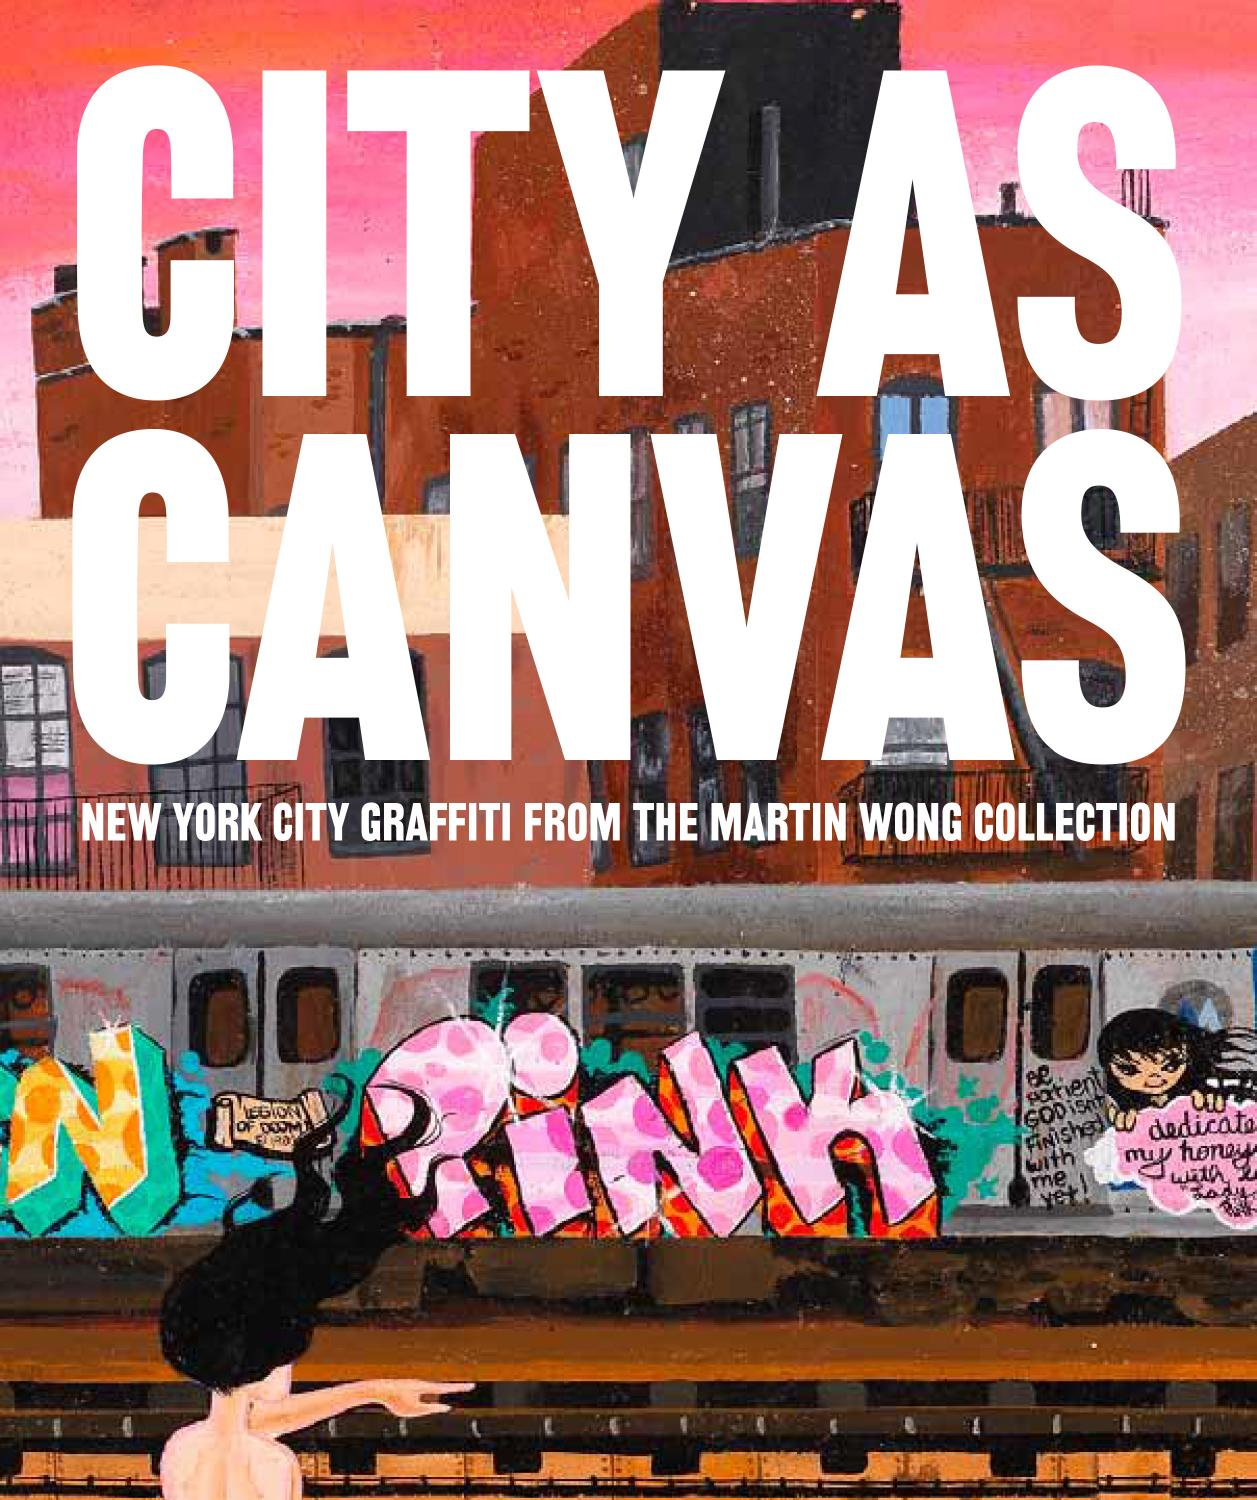 City as canvas new york city graffiti from the martin wong collection by rizzoli international publications issuu